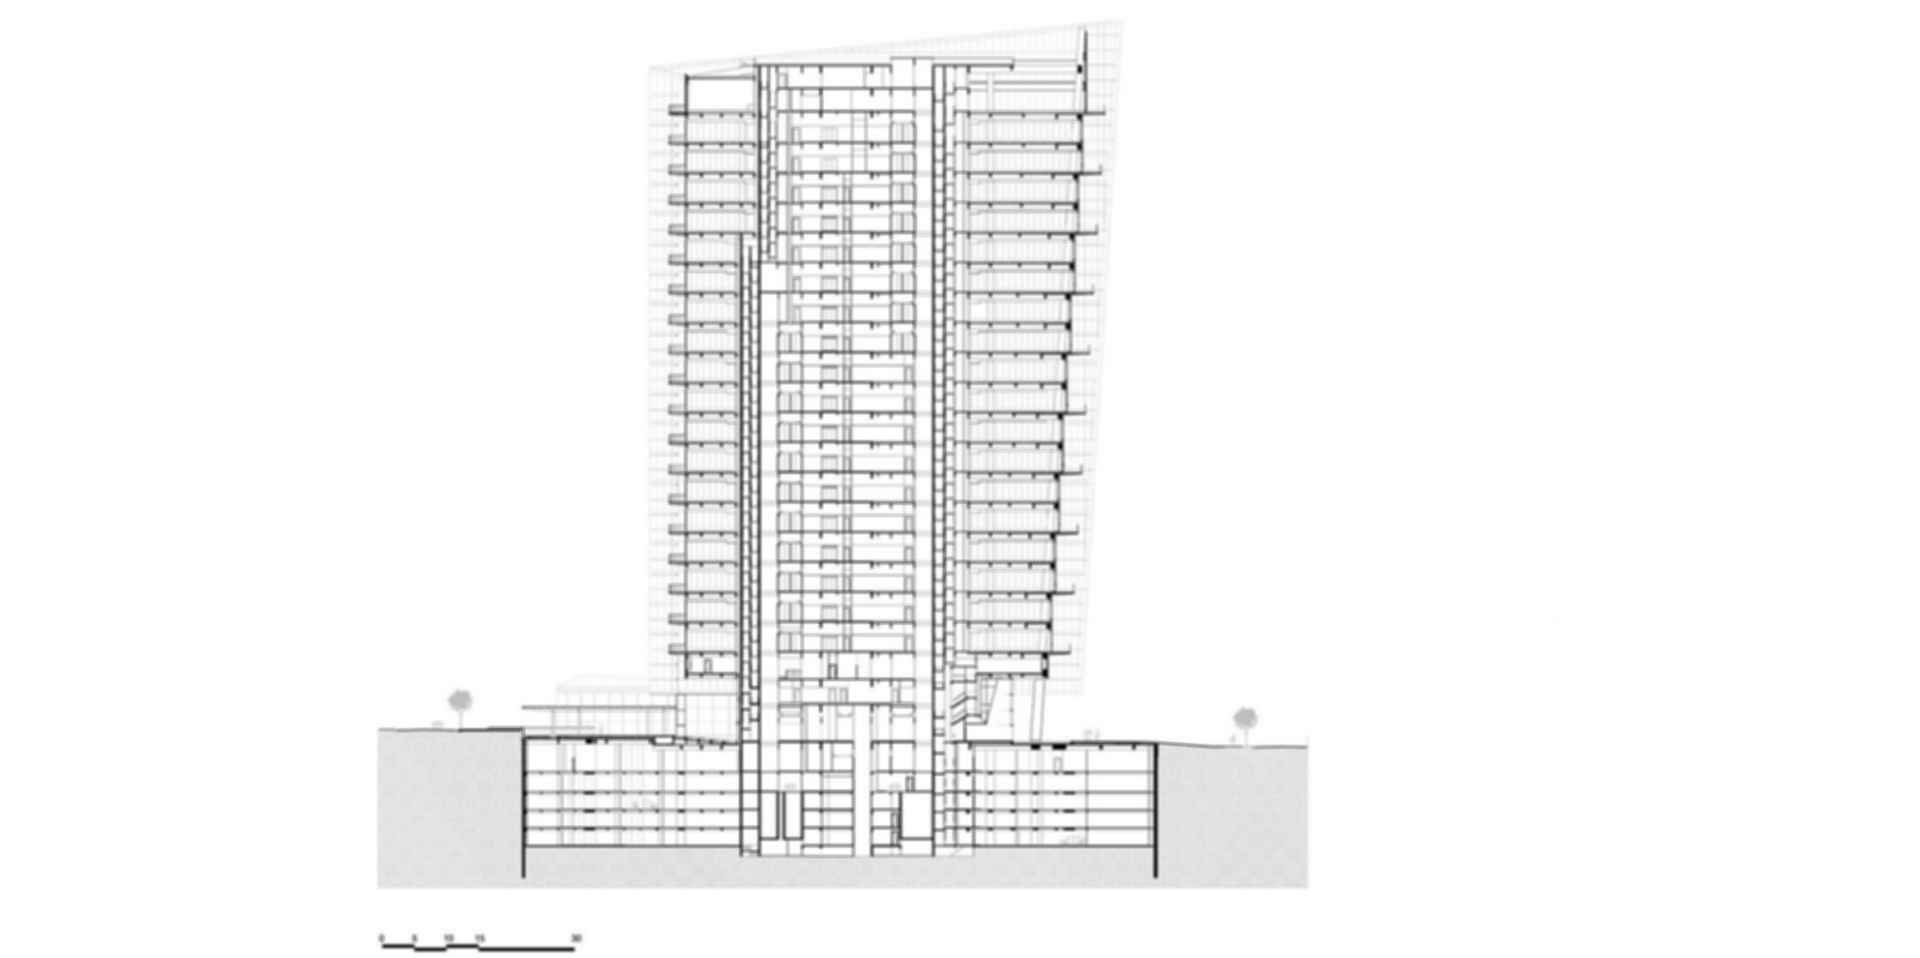 Infinity Tower KPF - Section